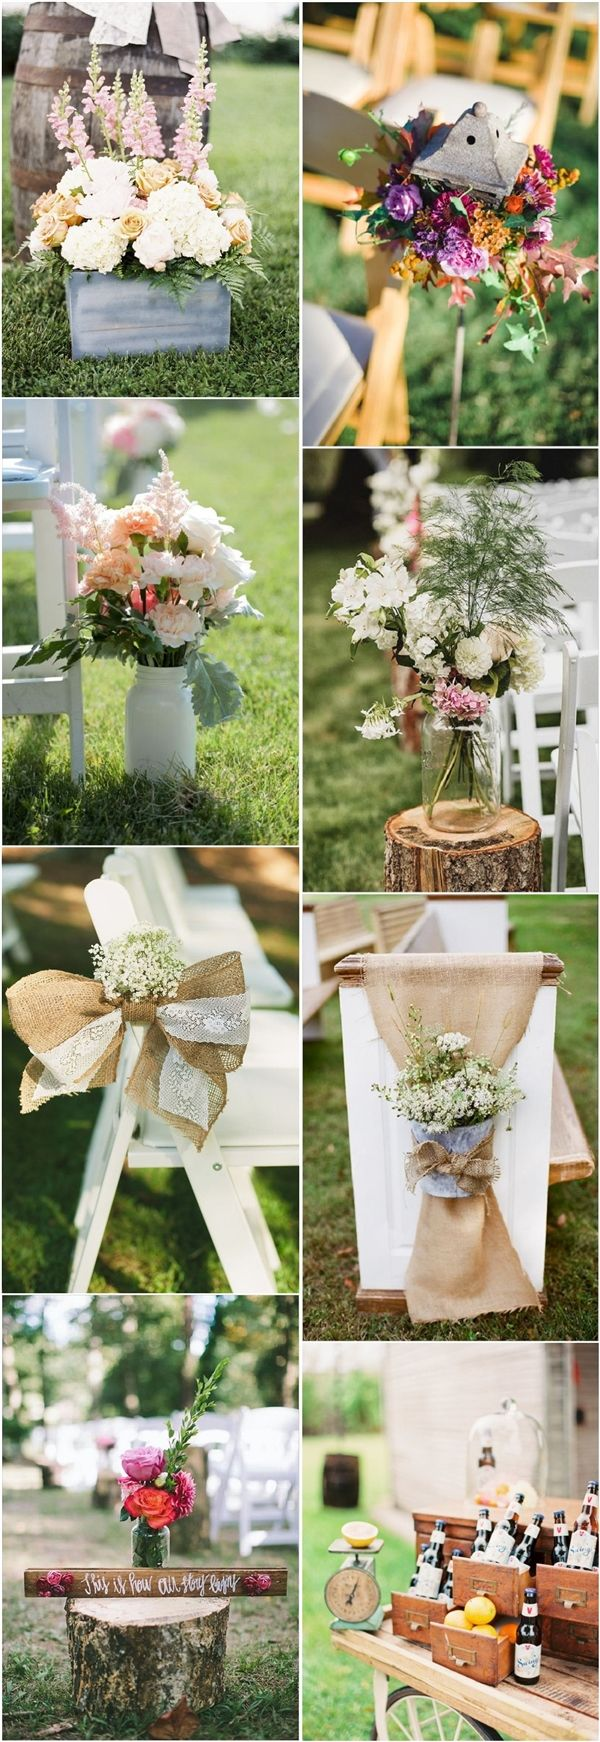 Wedding decorations without flowers  Wedding Ideas  rustic country garden wedding ideas outdoor